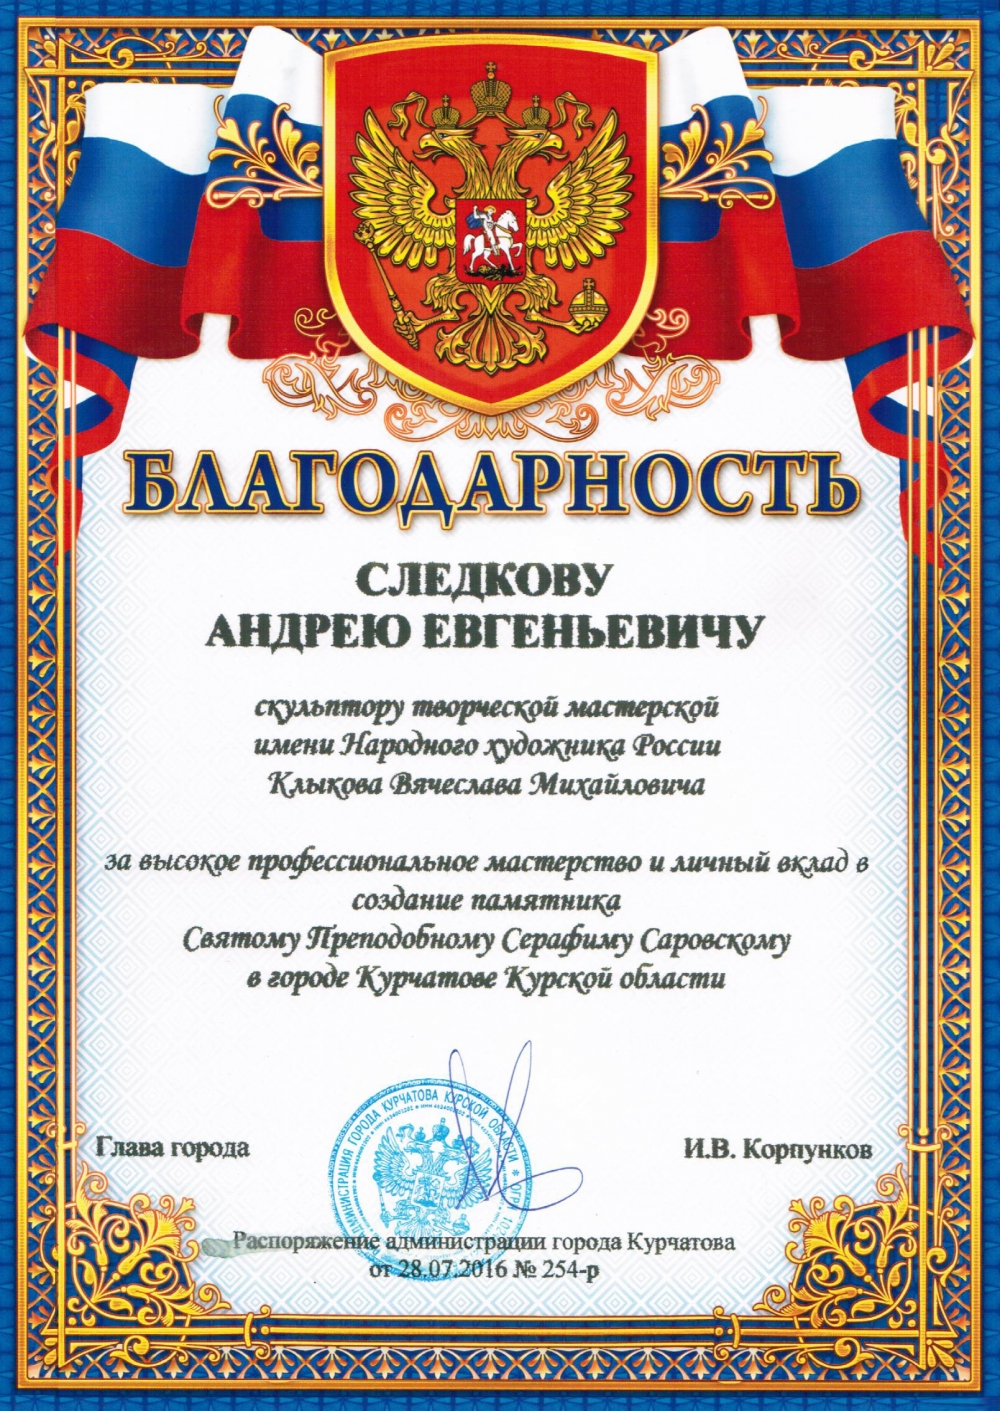 The letter of gratitude from the administration of the city of Kurchatov